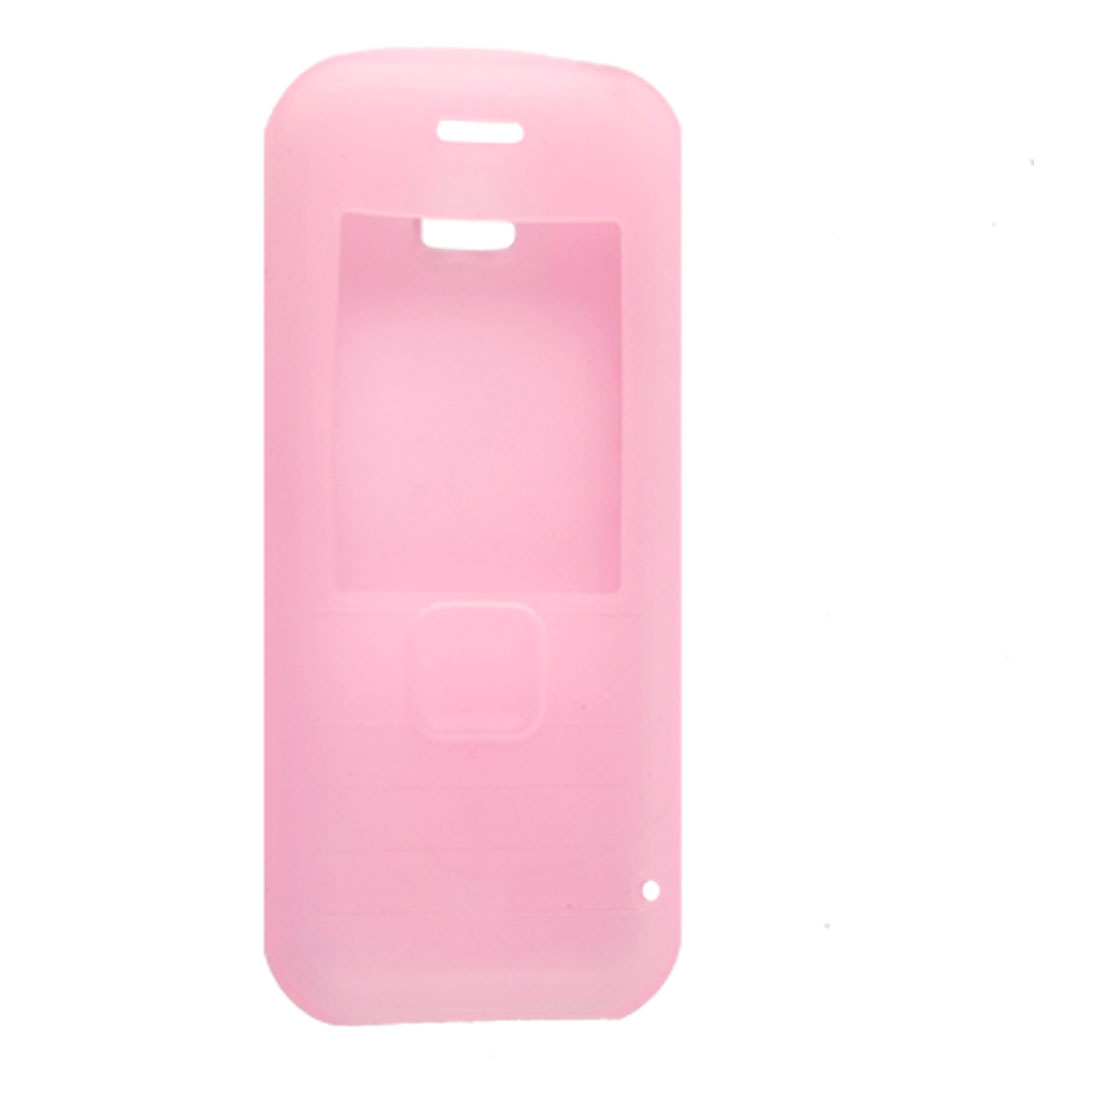 Nonslip Silicone Skin Guard Cover Clear Pink for Nokia 7310C